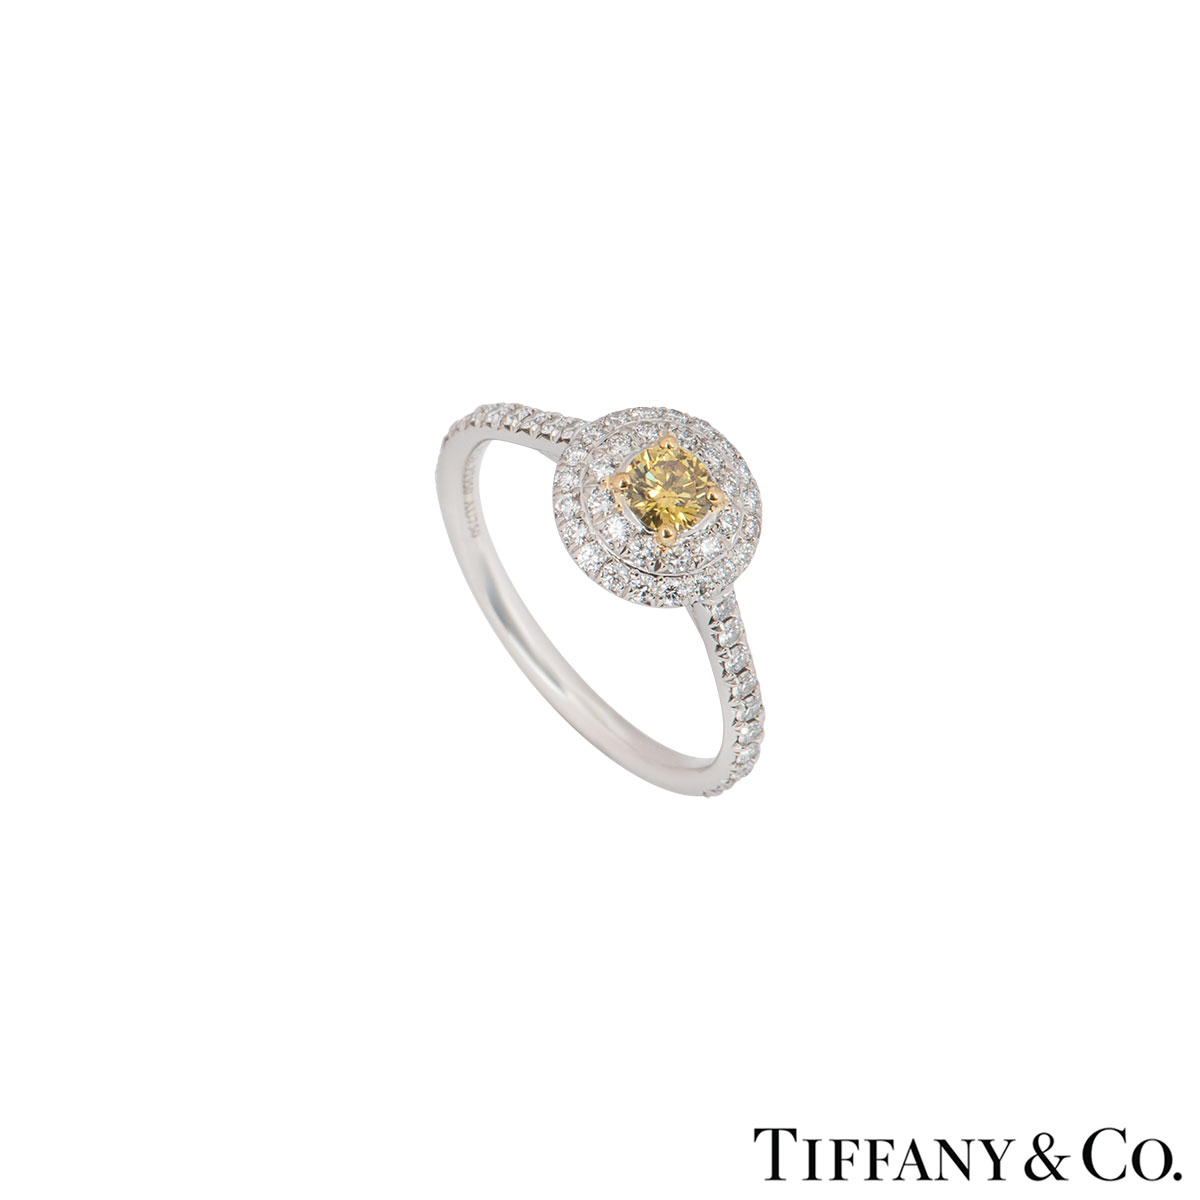 Tiffany & Co. Platinum Fancy Yellow Diamond Soleste Ring